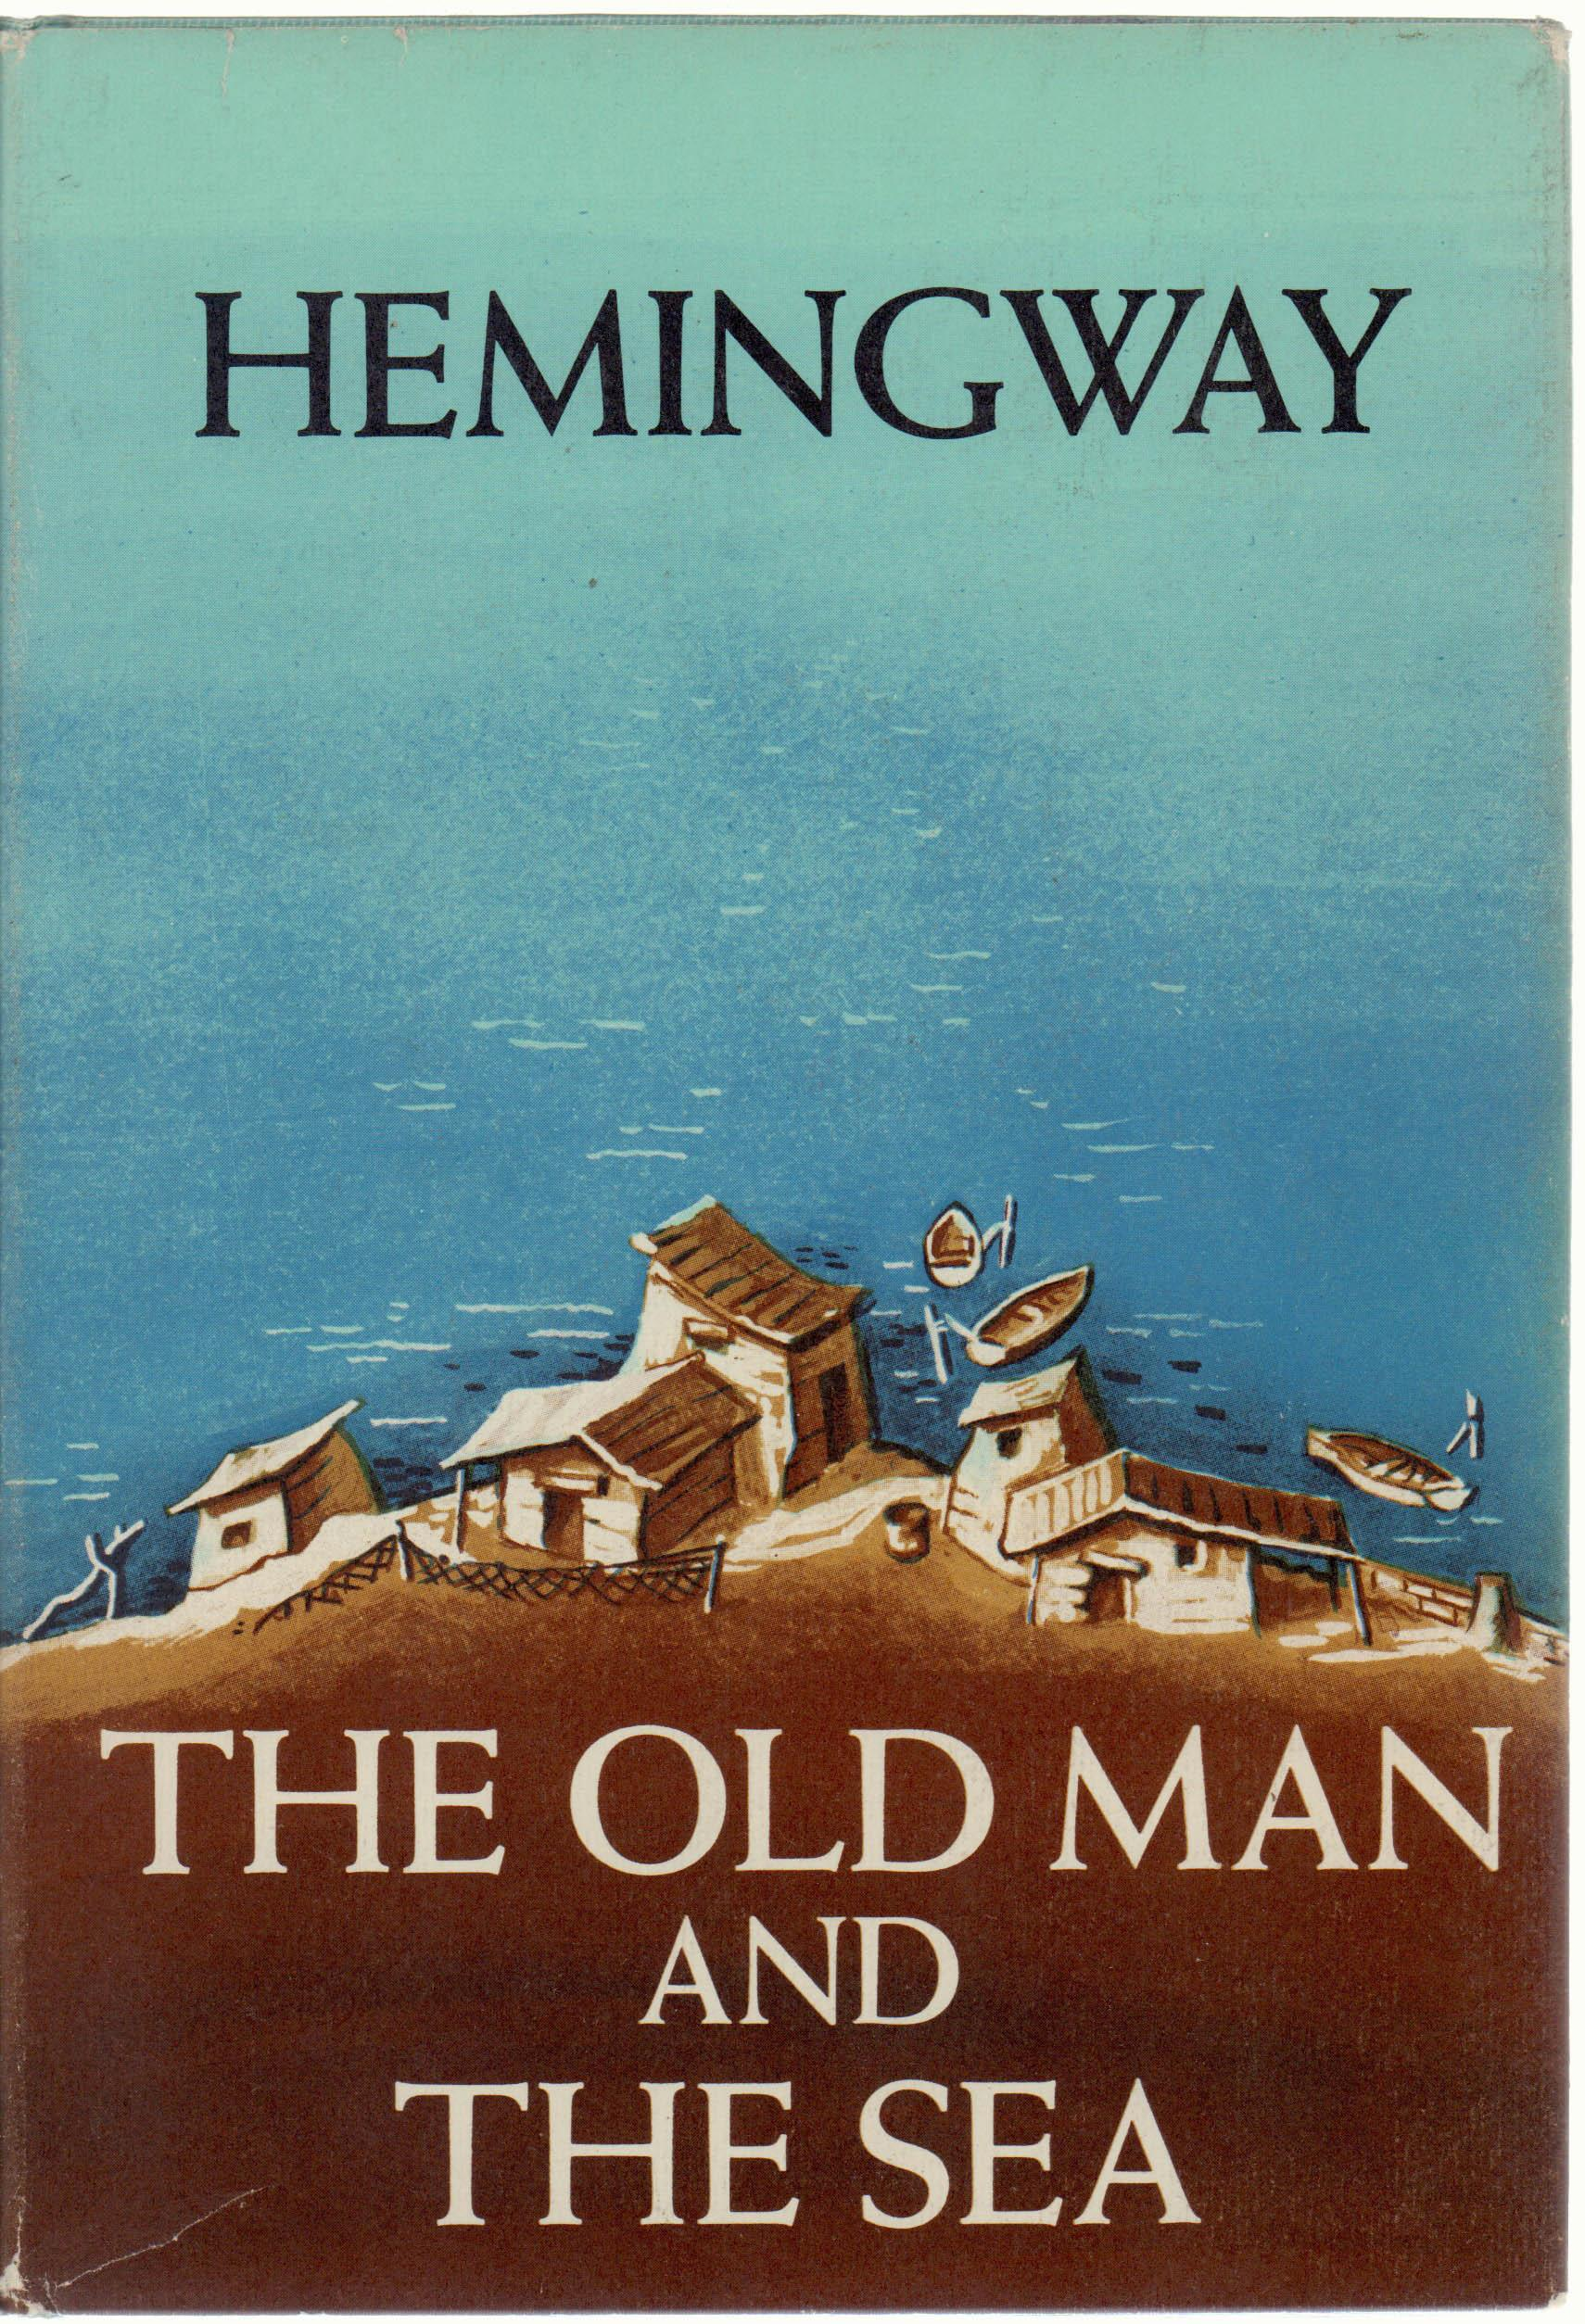 the journey in the old man and the sea by ernest hemingway A story board of the old man and the sea the old man and the sea the hero's journey story by ernest hemingway storyboard by jonathan skoreyko the ordinary.